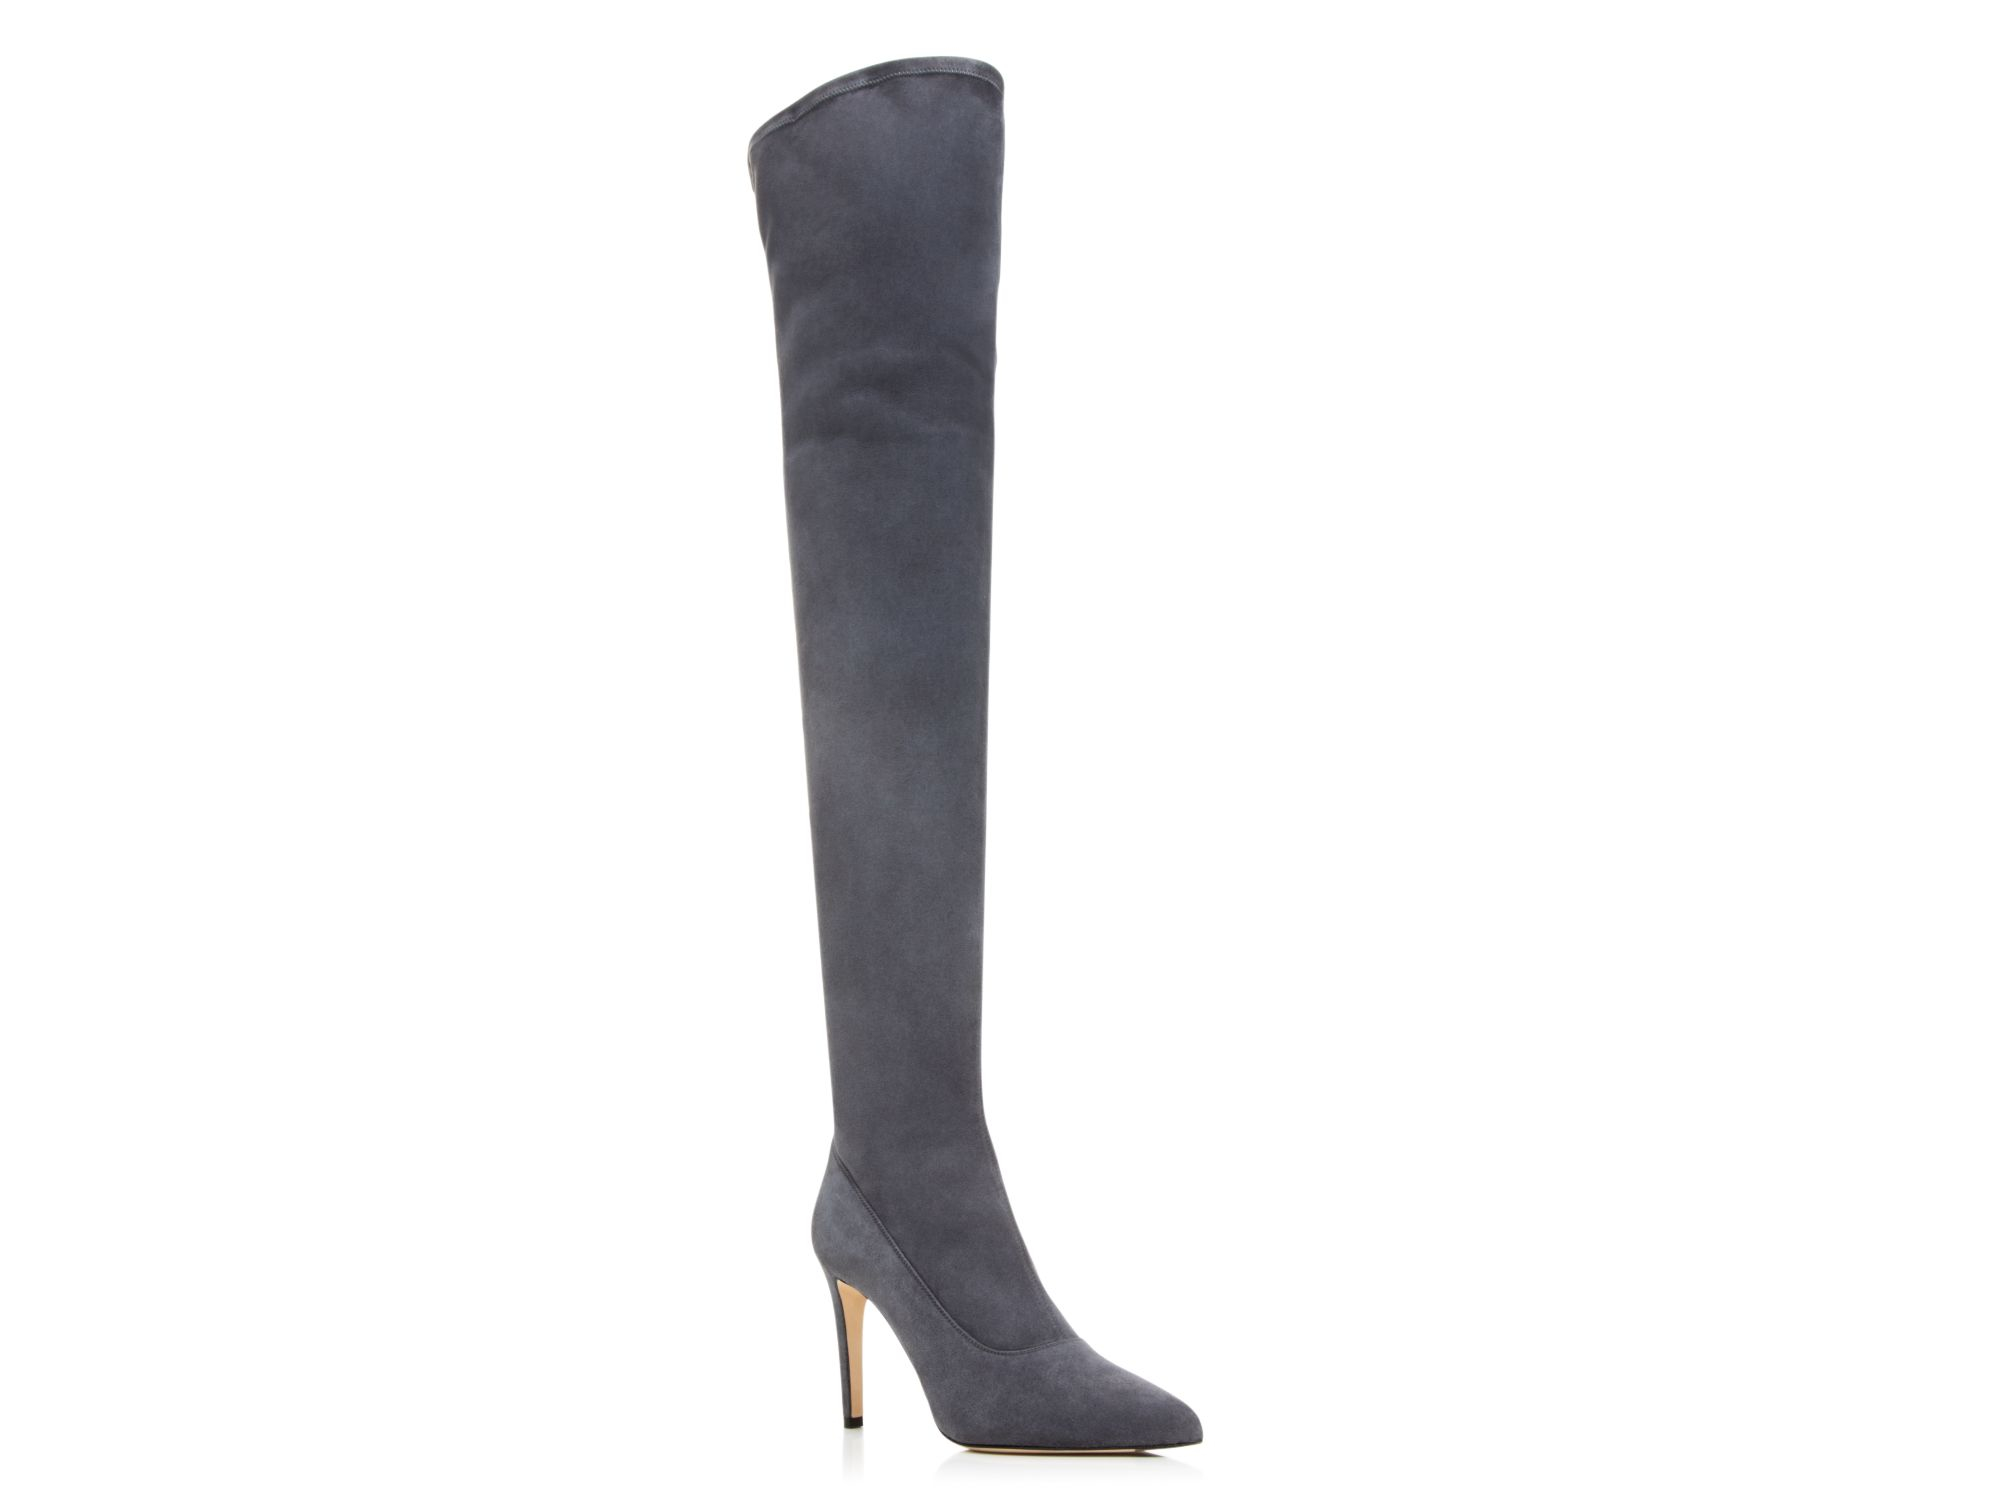 Sergio rossi Matrix Over The Knee Boots in Gray